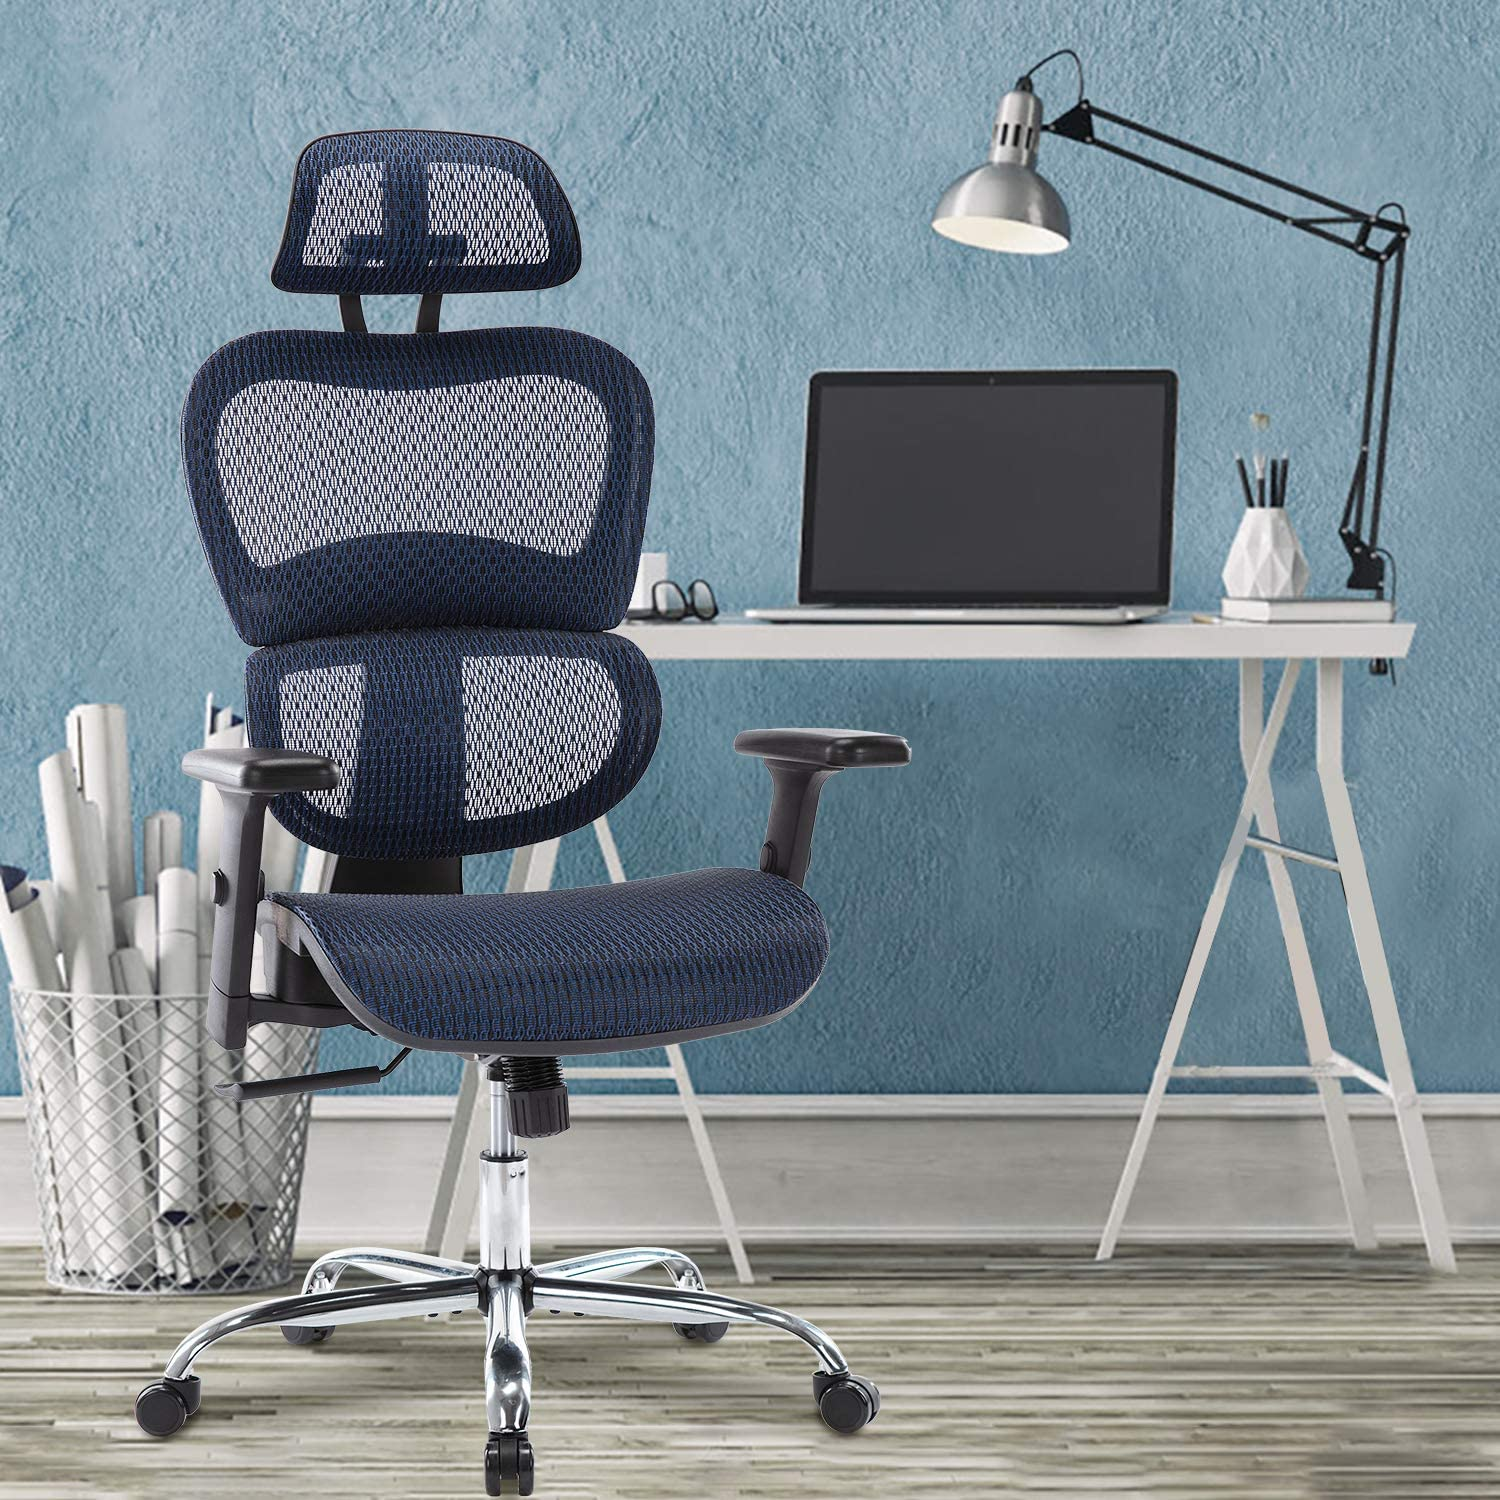 H1dc1527bf0924568a48449147c7316c0c - Office Chair Ergonomics Mesh Chair Computer Chair Desk Chair High Back Chair gaming chair With Adjustable Headrest and Armrests